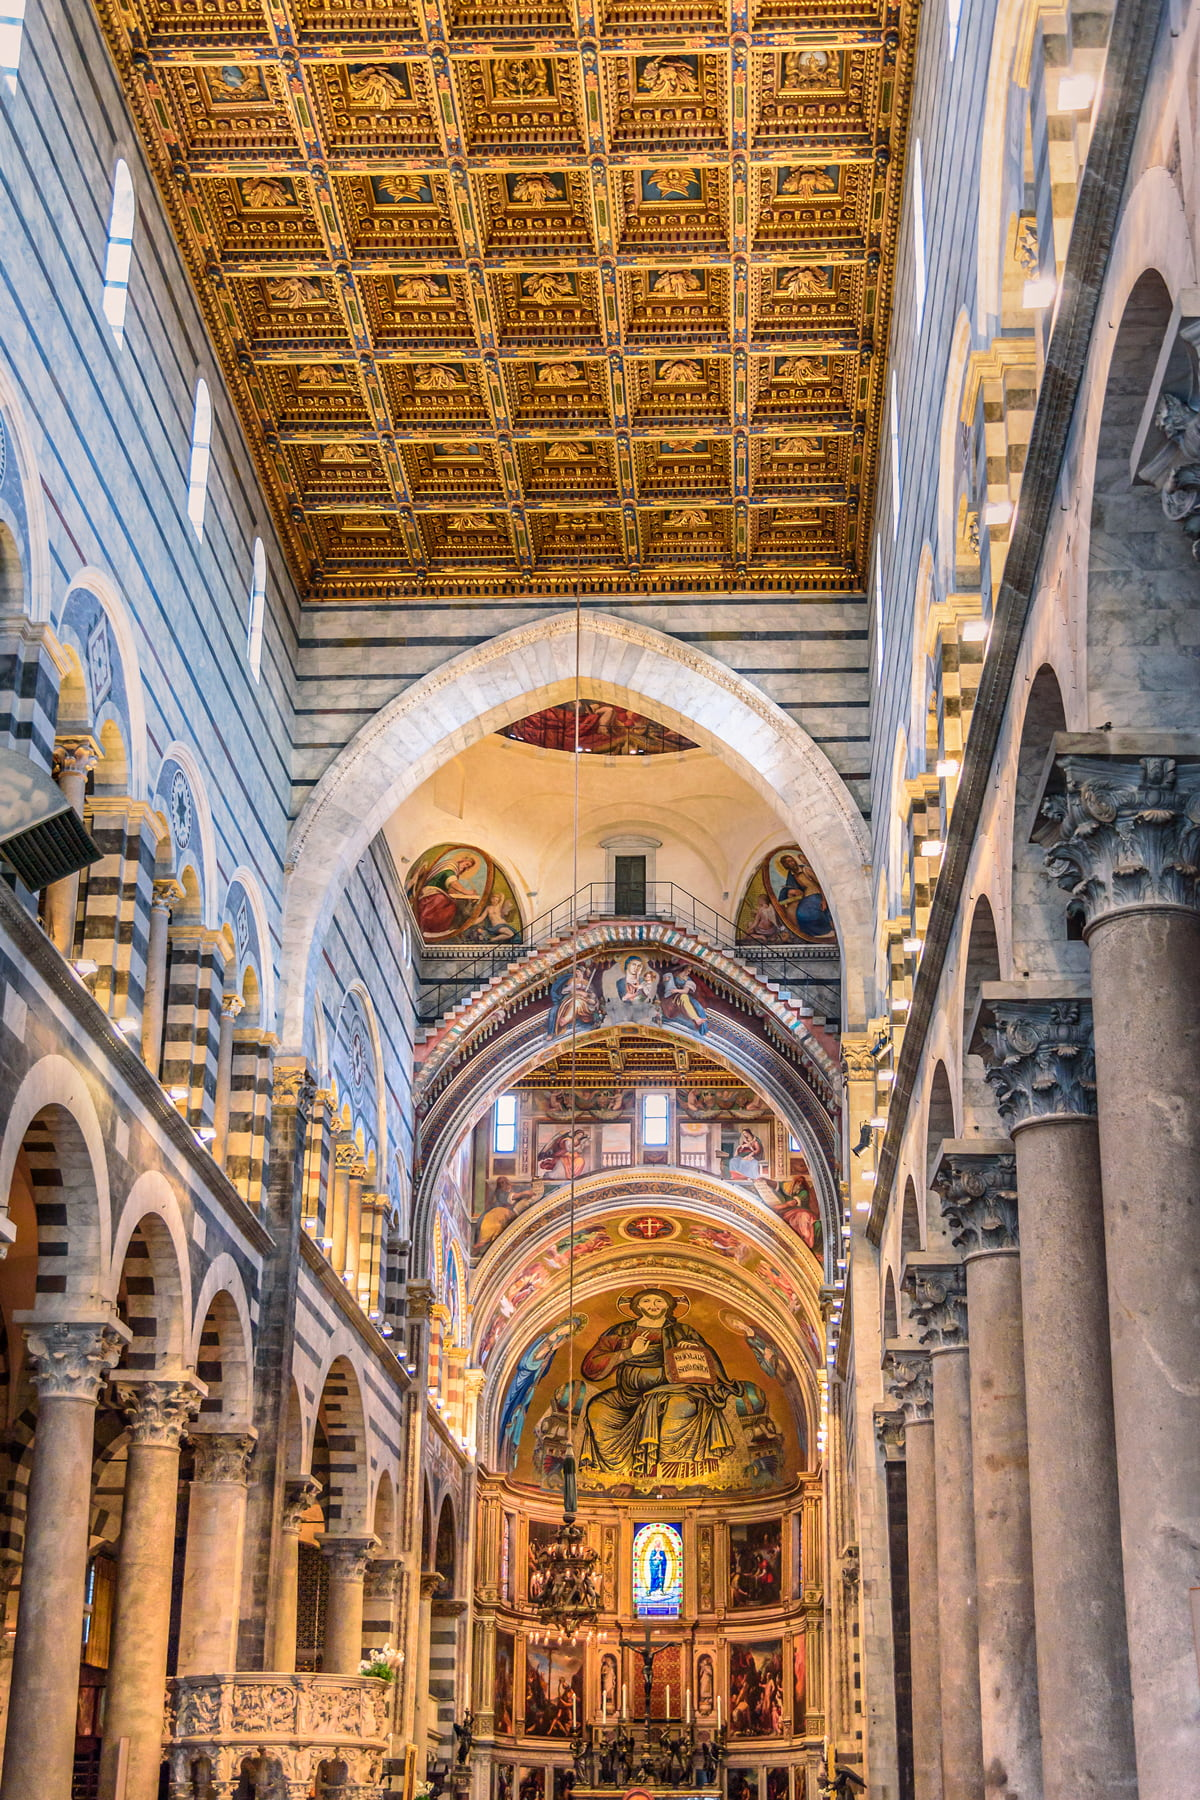 Inside Pisa Cathedral